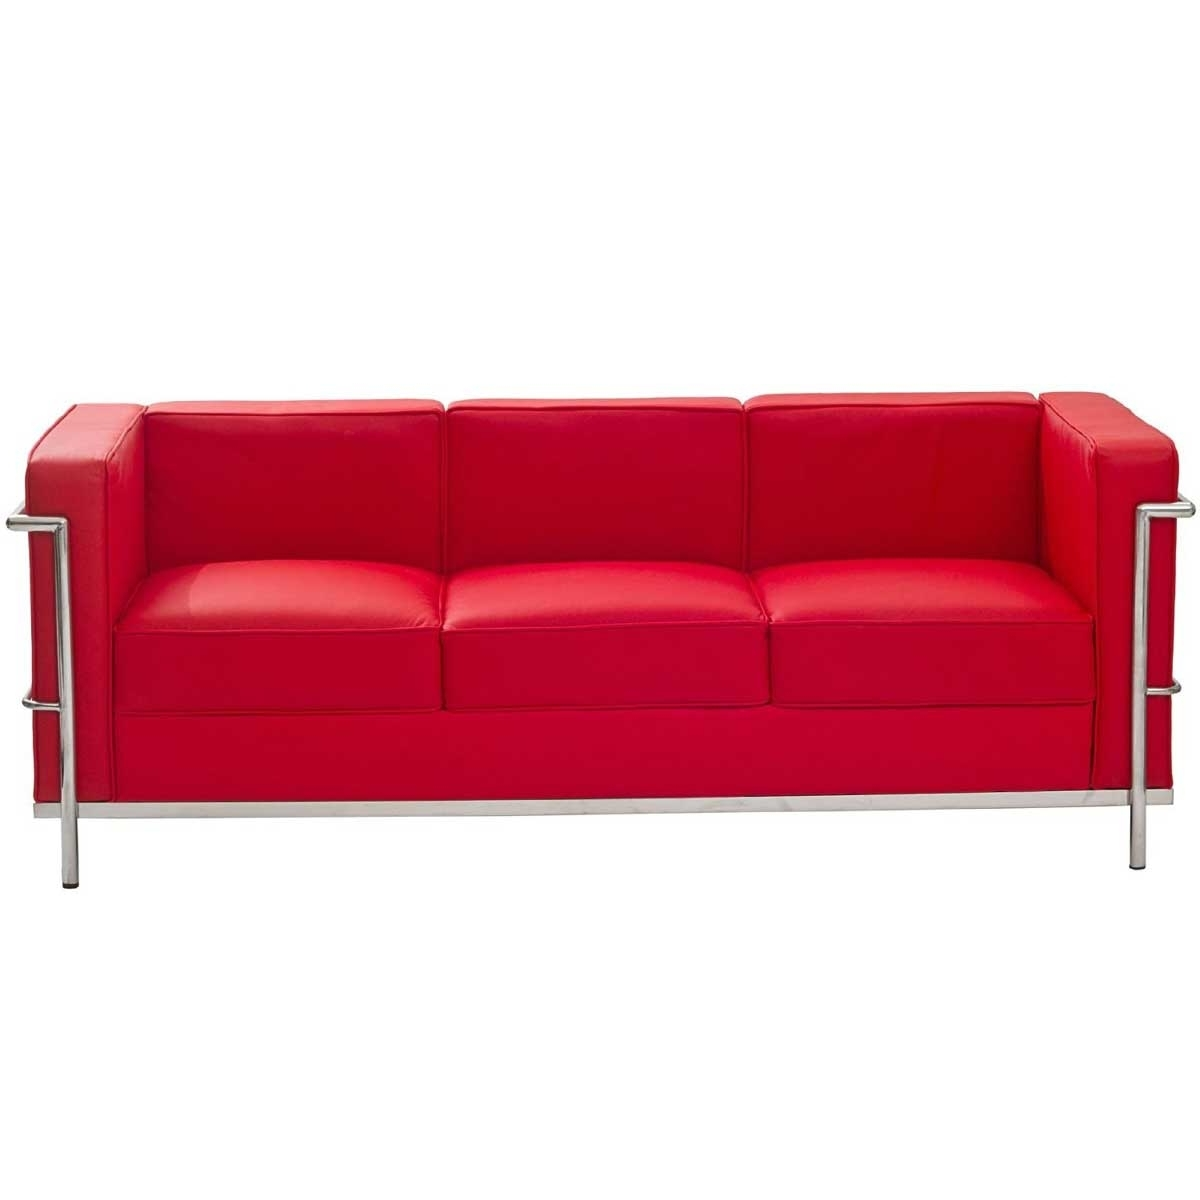 Red Sofa Chairs Within Well Known Interior : Red Sofa And Loveseat Leather Interior Furniture (View 10 of 20)